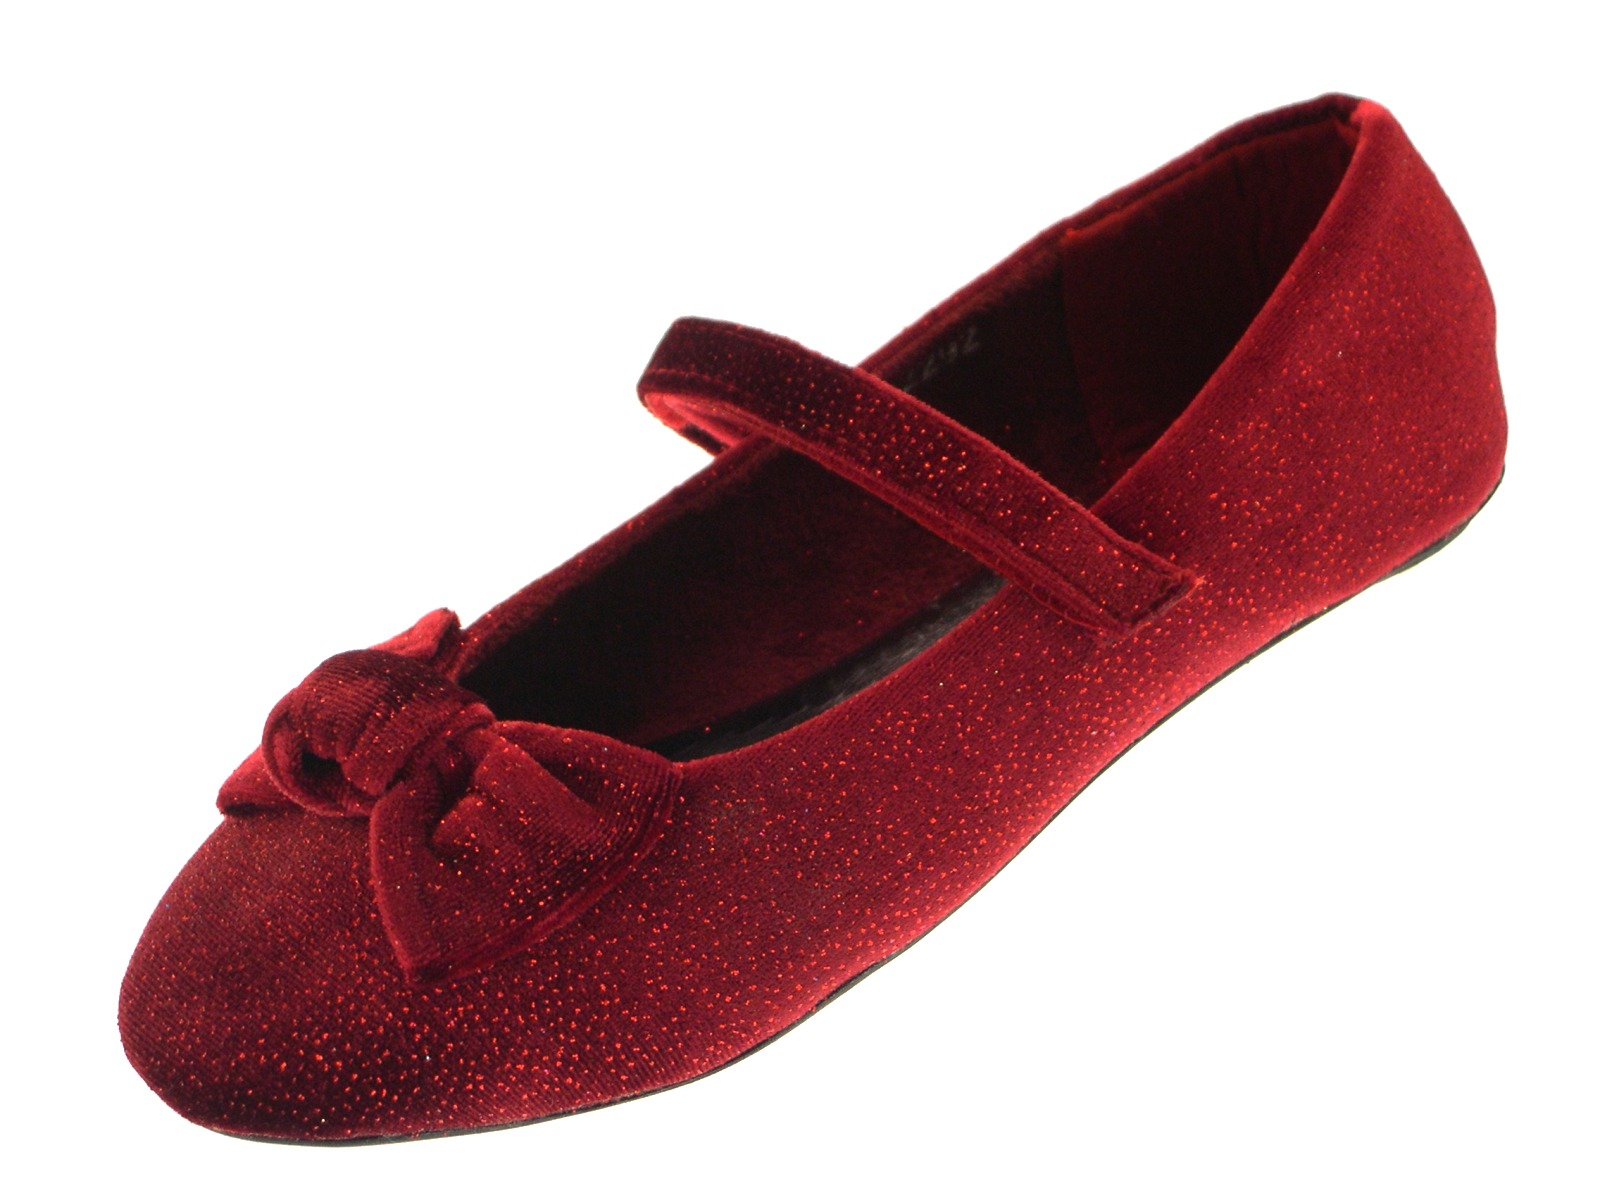 dc0db058f93 Girls Velvet Glitter Party Shoes Mary Janes Flat Ballet Pumps ...